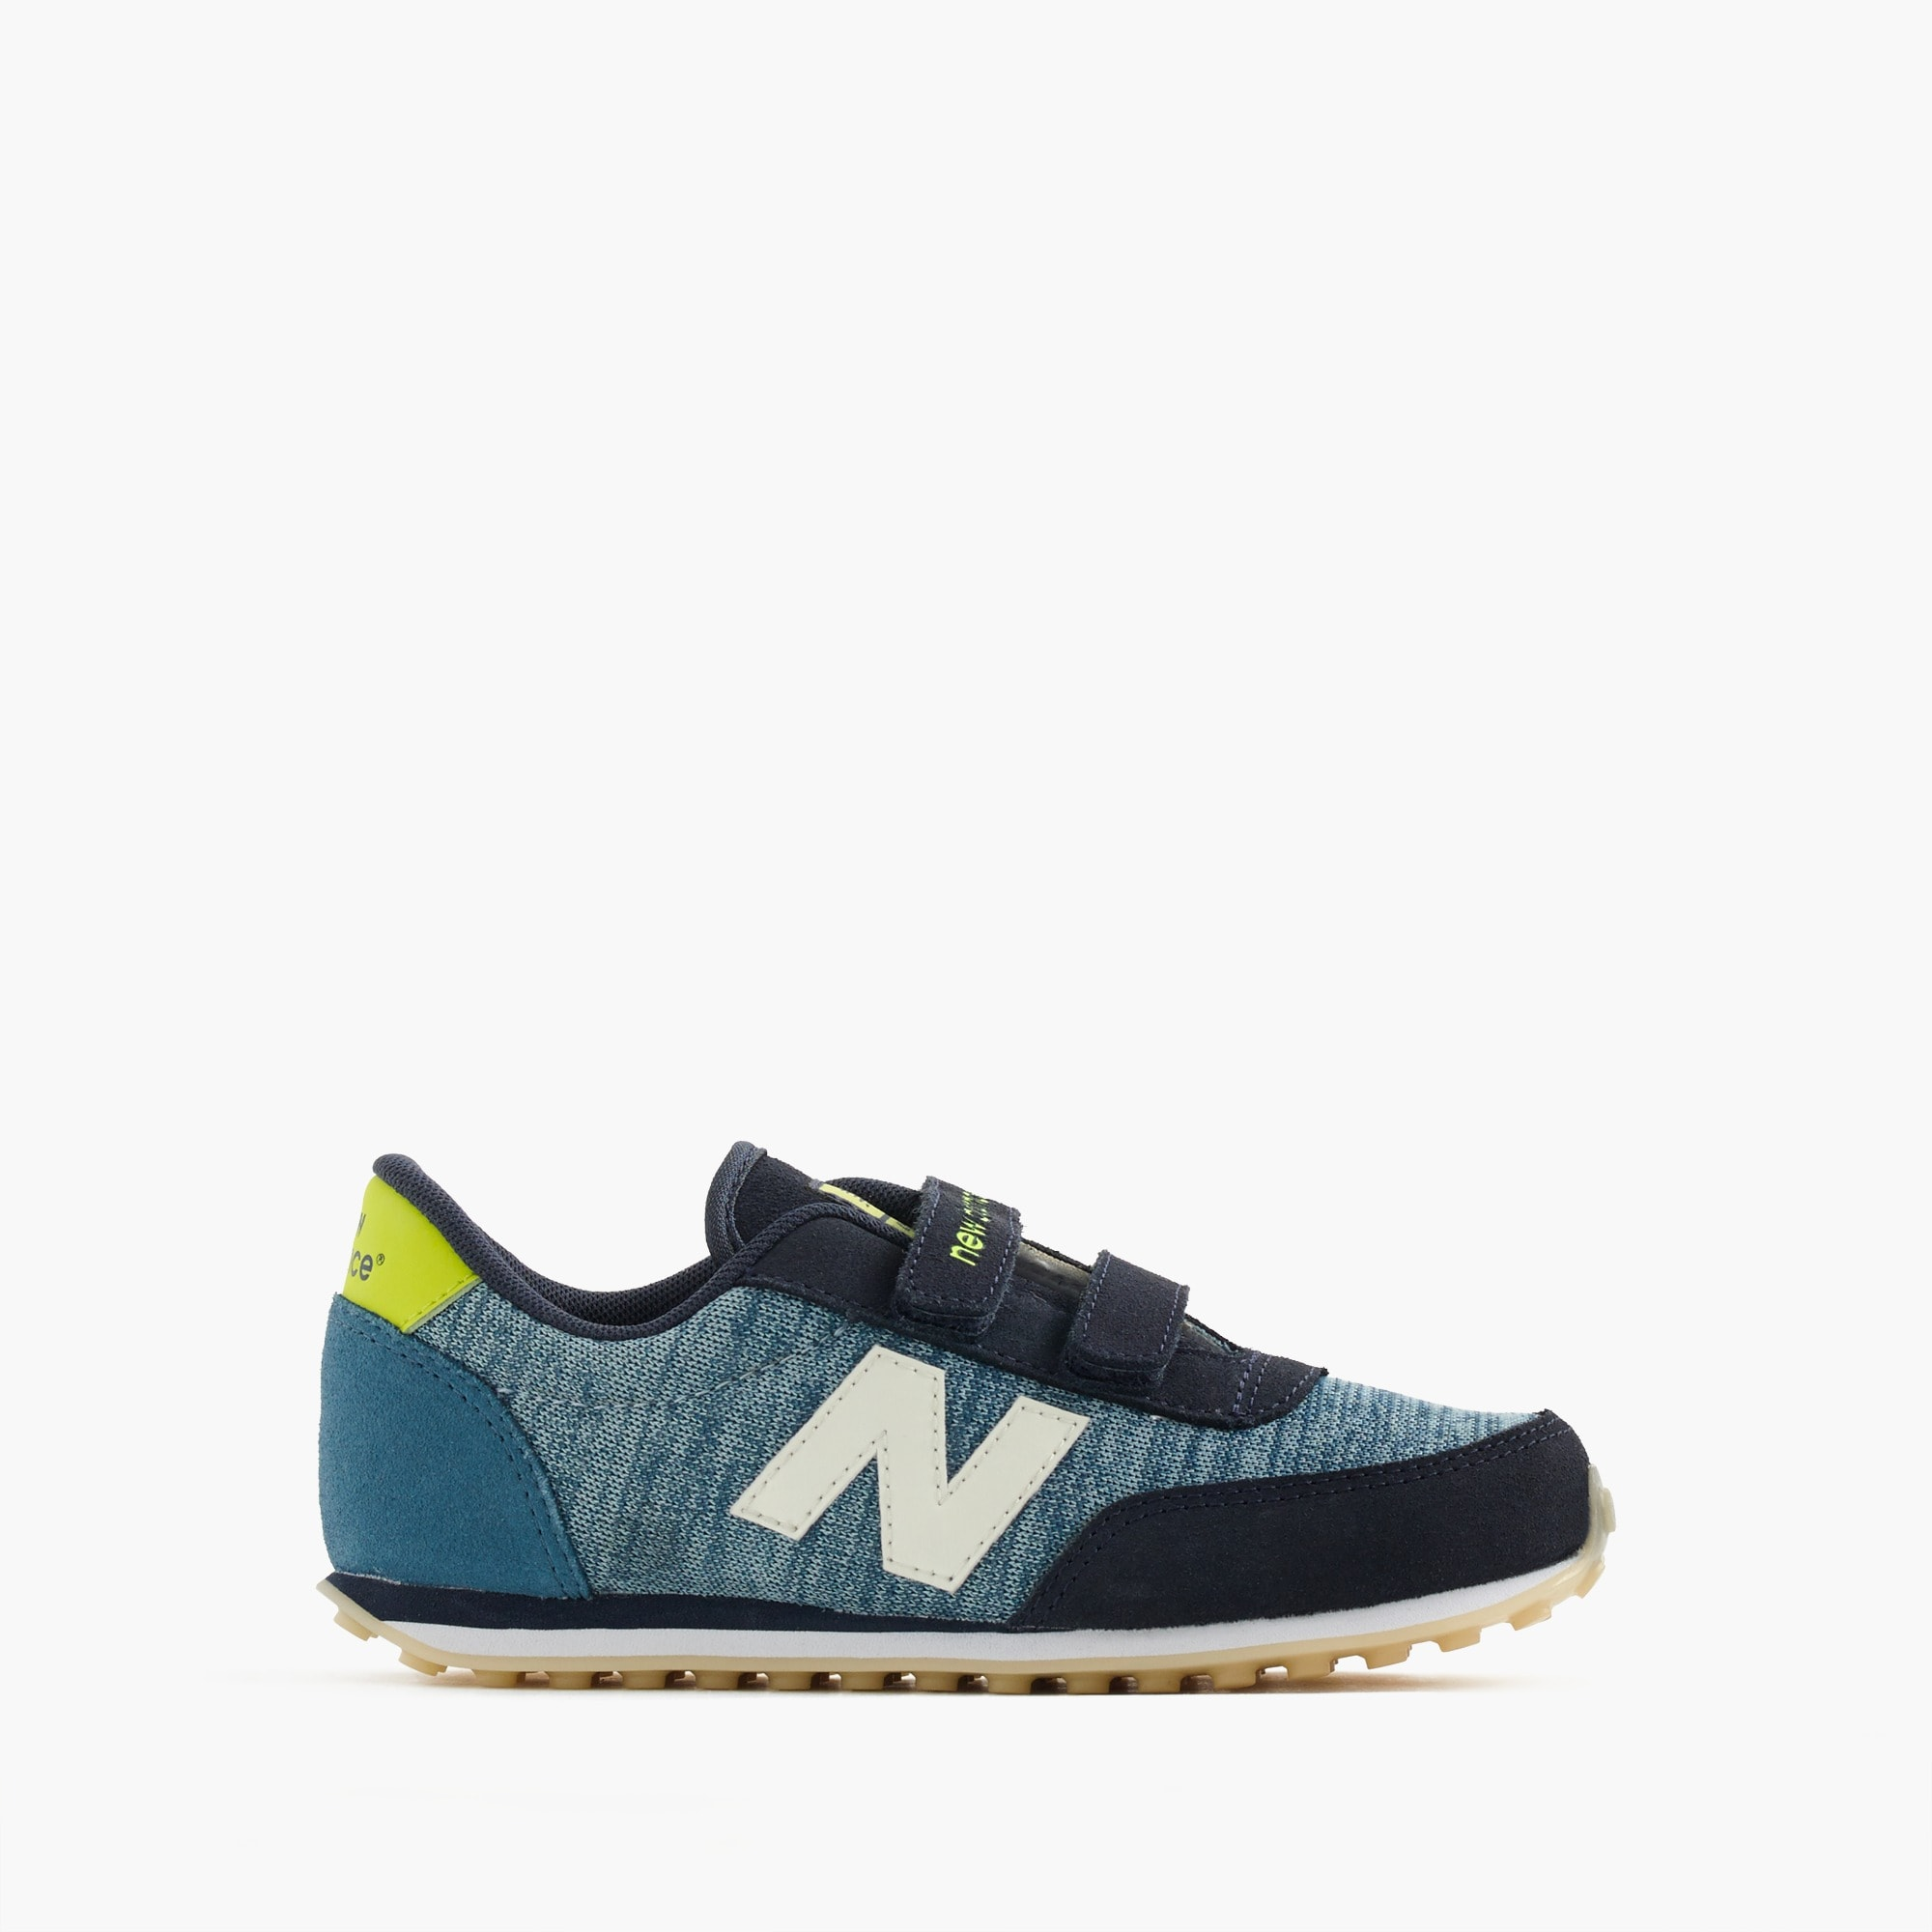 Kids' New Balance® for crewcuts glow-in-the-dark 410 sneakers boy j.crew in good company c